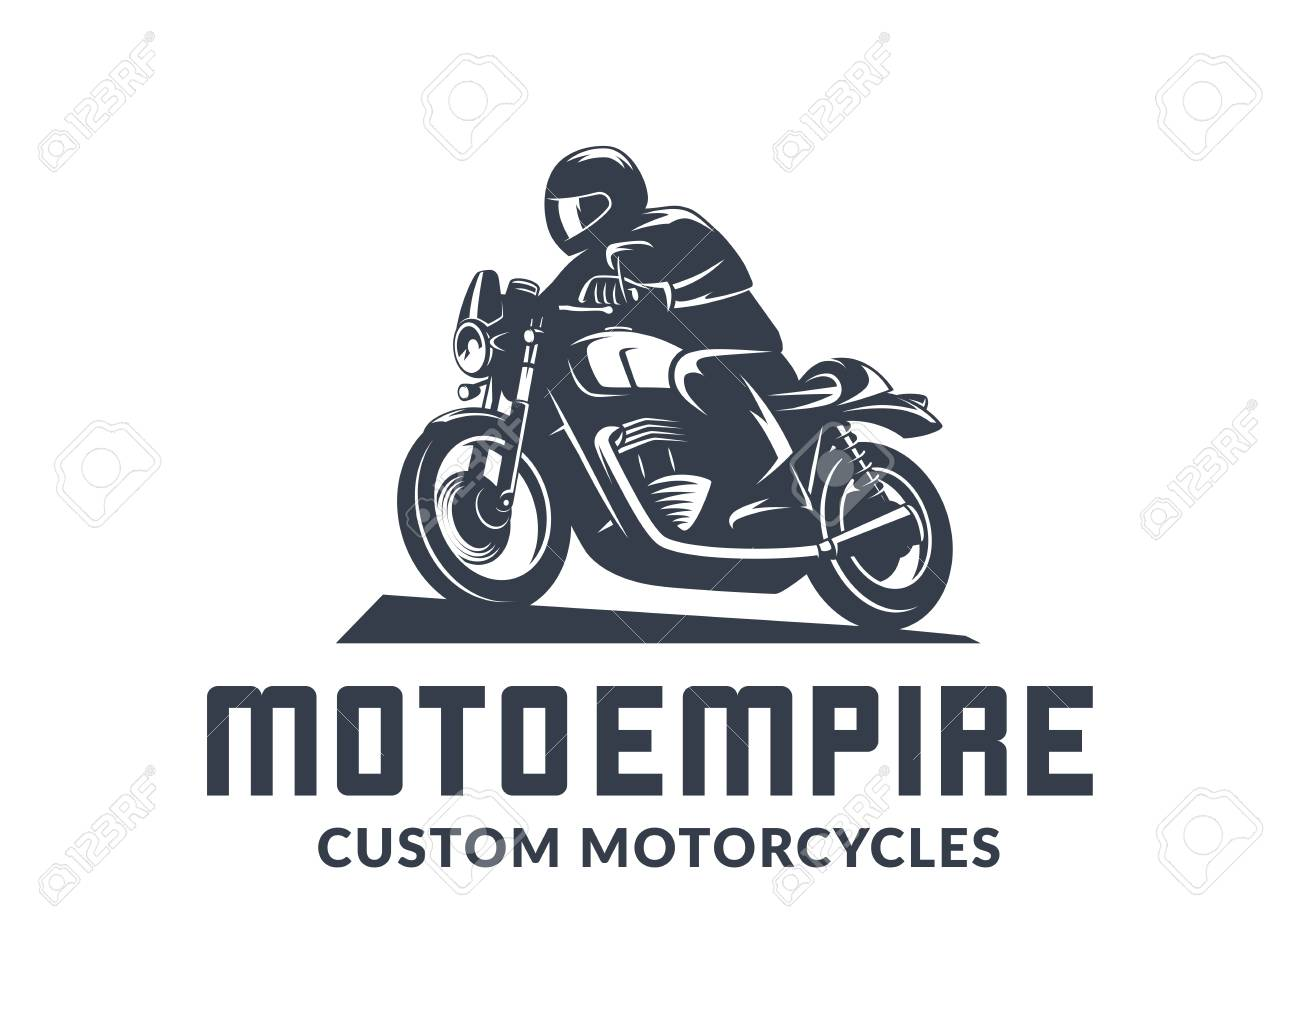 Vintage Cafe Racer Motorcycle Logo Isolated On White Background Royalty Free Cliparts Vectors And Stock Illustration Image 98116215